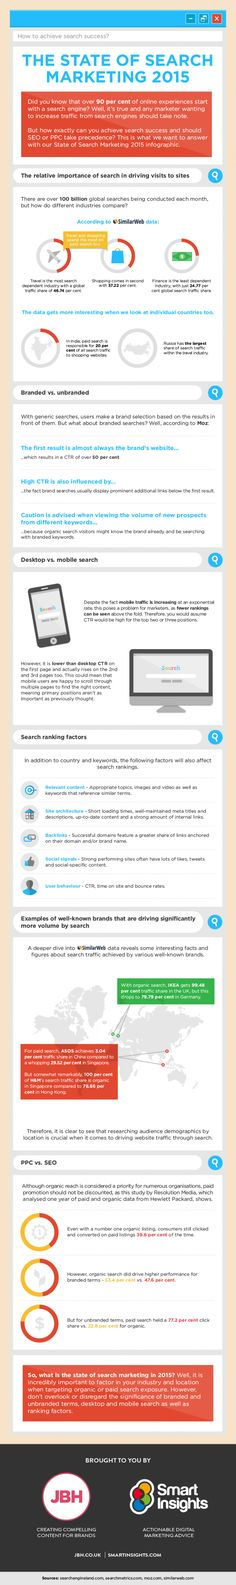 State of Search Marketing 2015